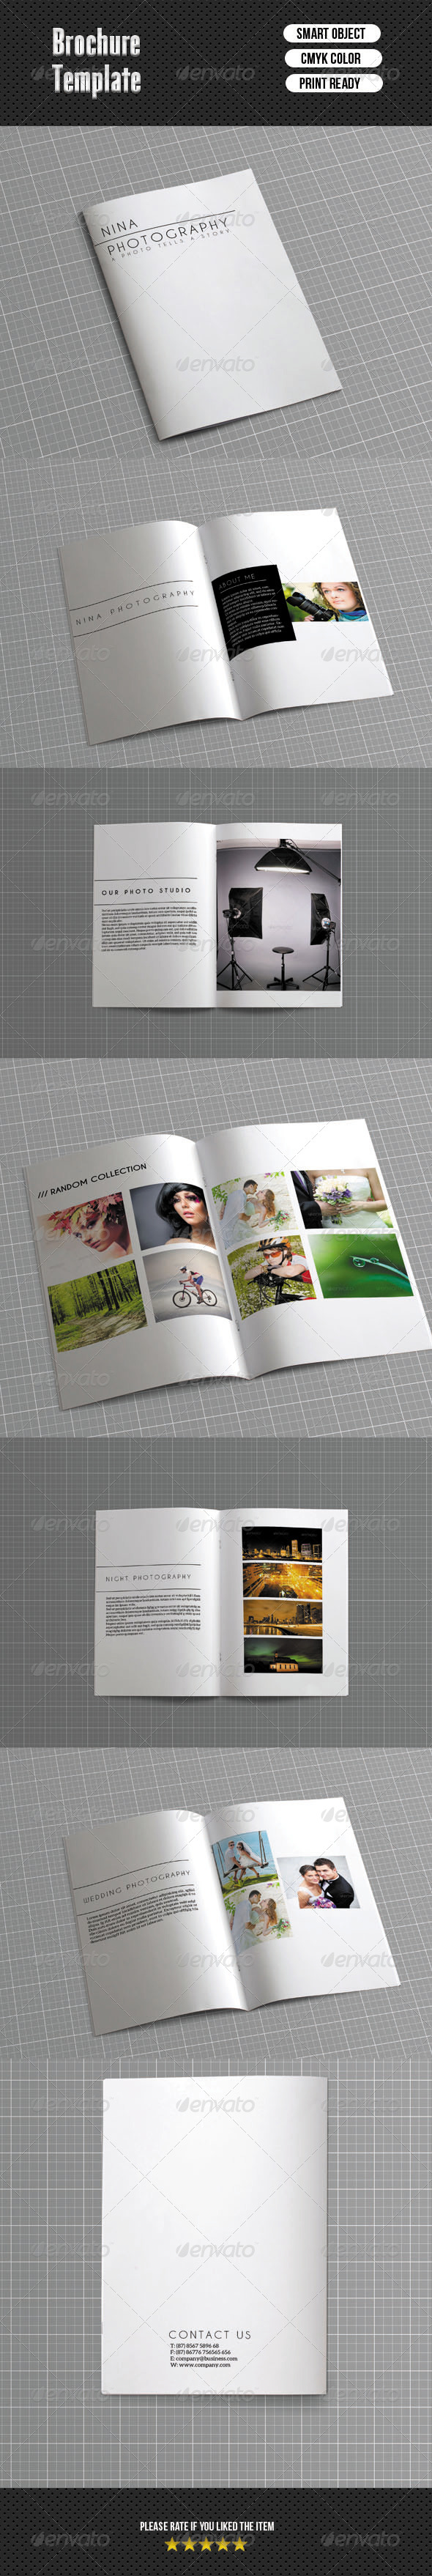 GraphicRiver Bifold Brochure-Photographer 6461469